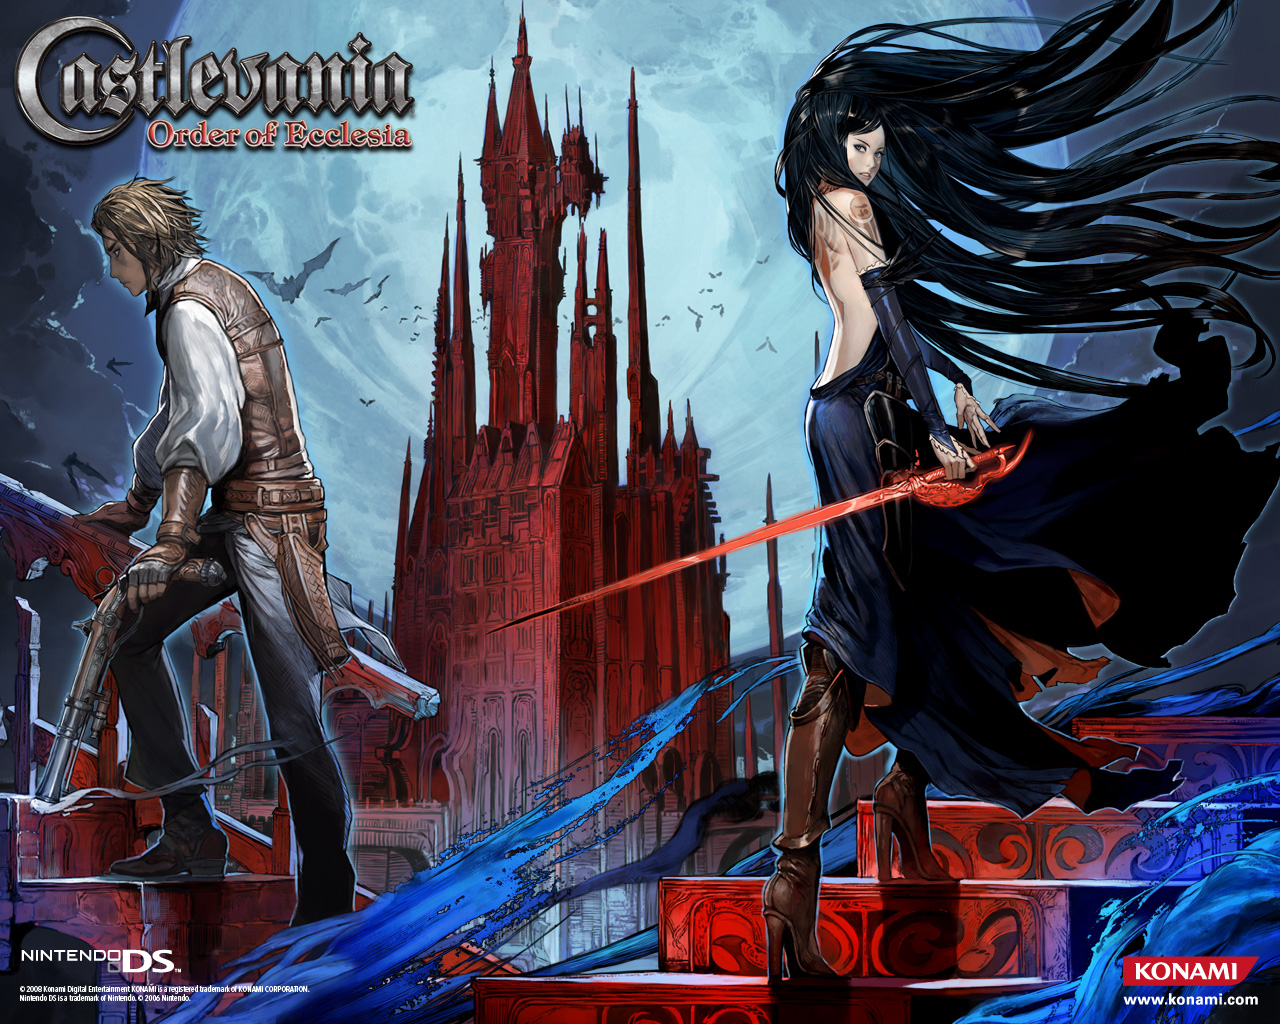 Free Download Castlevania Order Of Ecclesia Wallpaper Castlevania